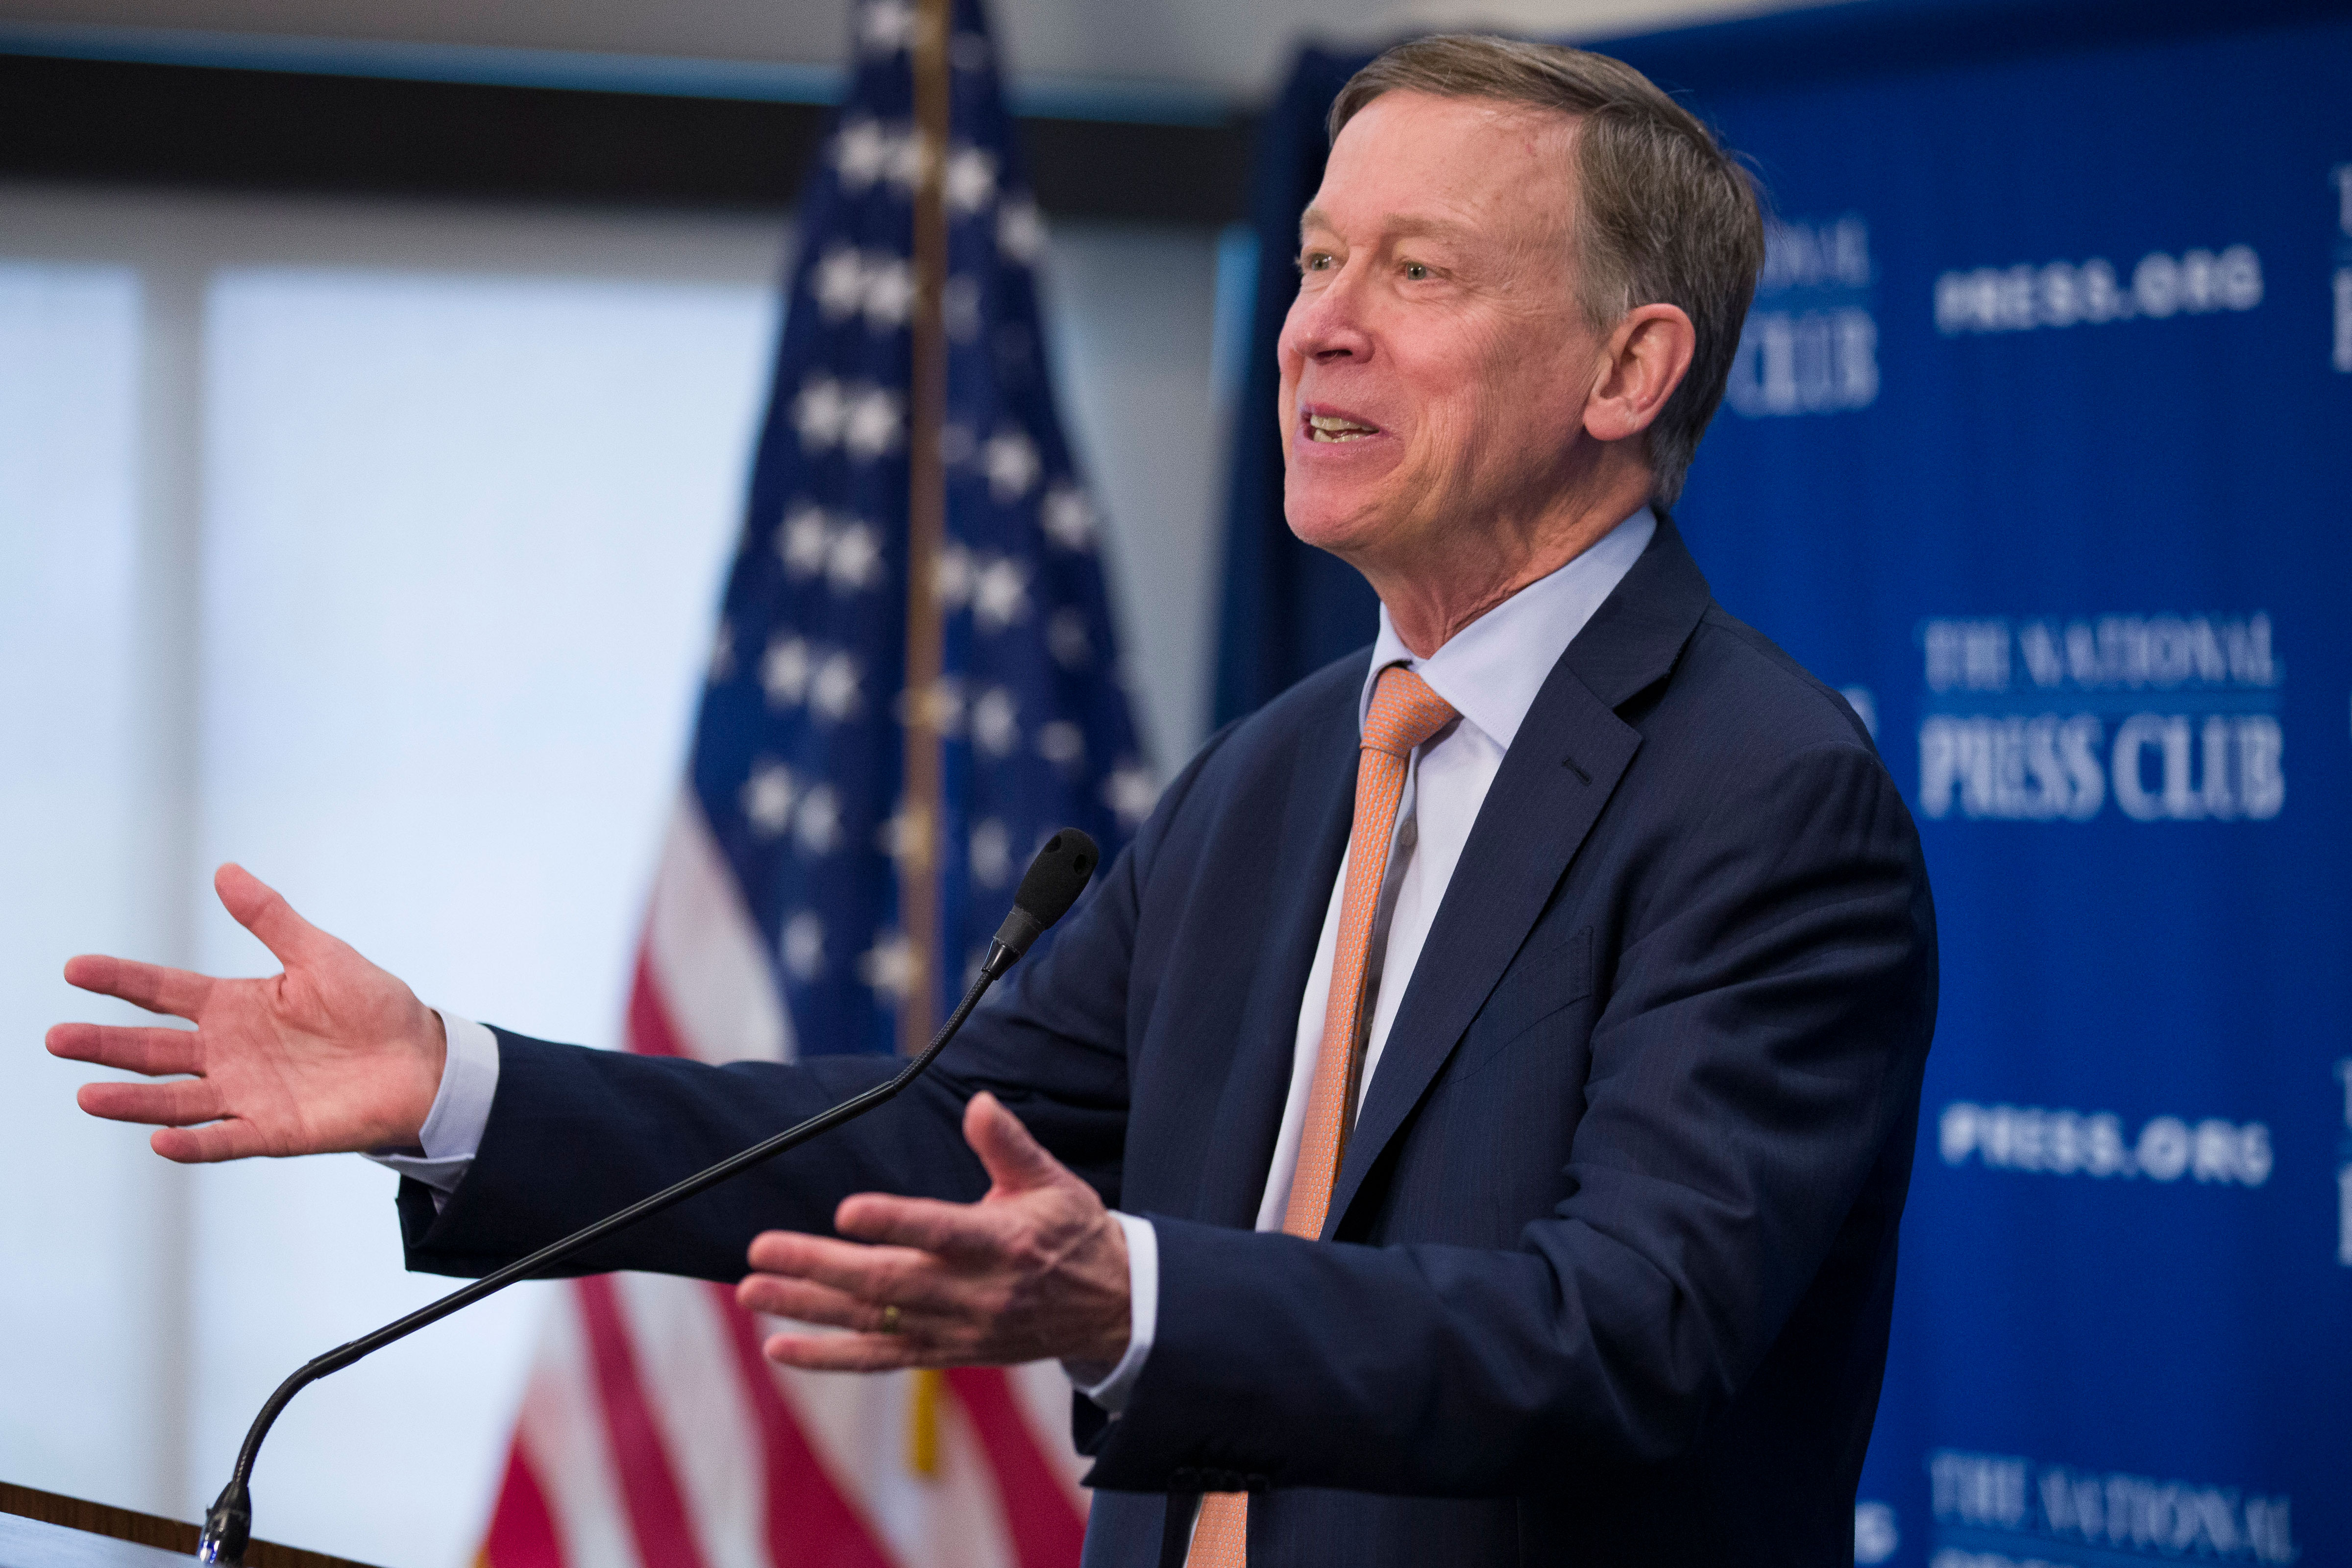 Photo: Election 2020 Governor Attention | Hickenlooper At National Press Club - AP